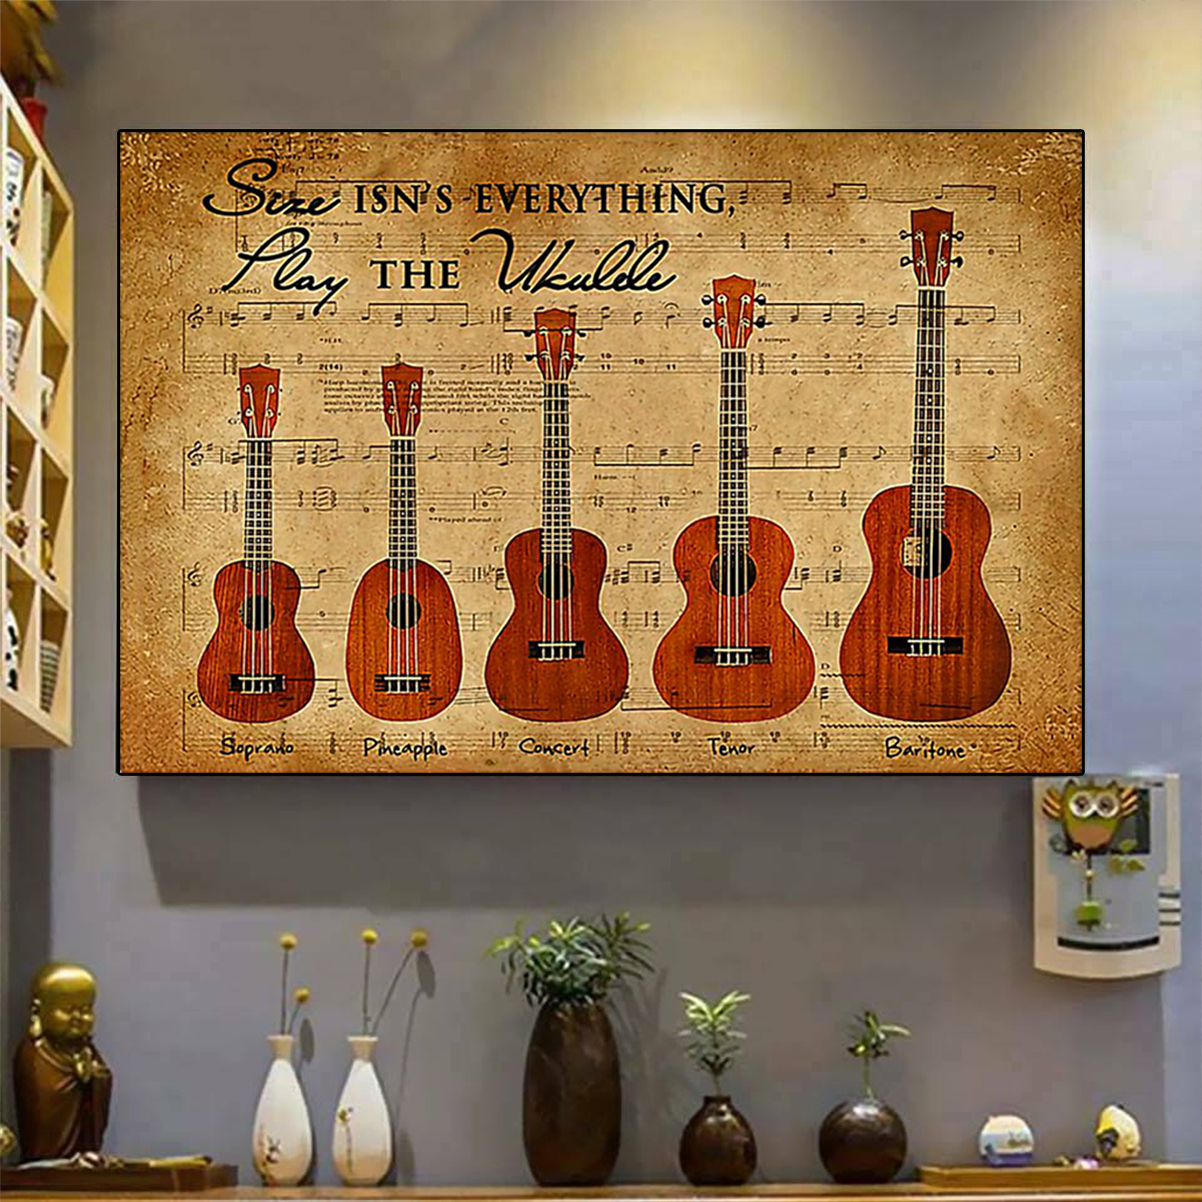 Size isn't everything play the ukulele poster A3